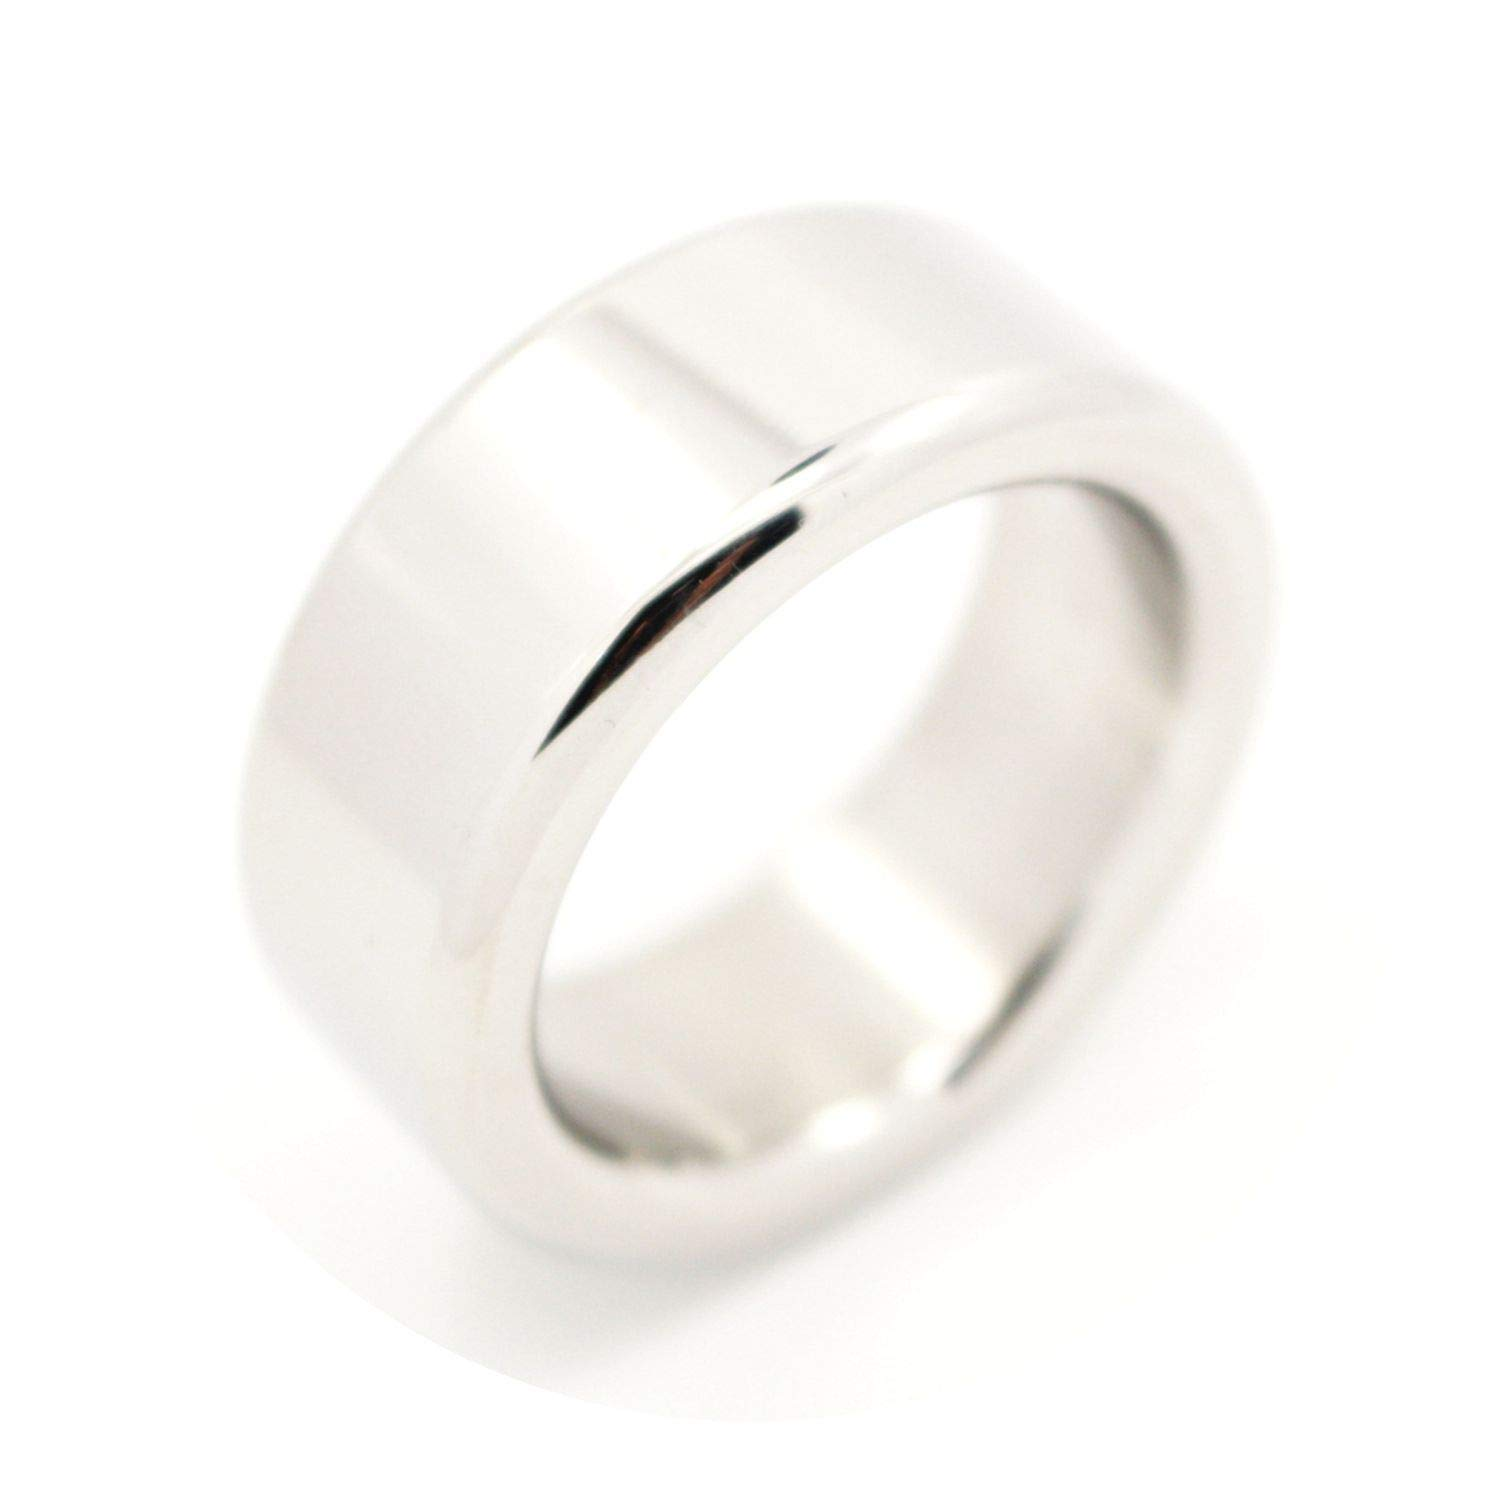 Amazon.com: Fun Products Ring Metal Stainless Steel Rings Male More Hard PRNT Lock Fun Toys, 30mm: Health & Personal Care